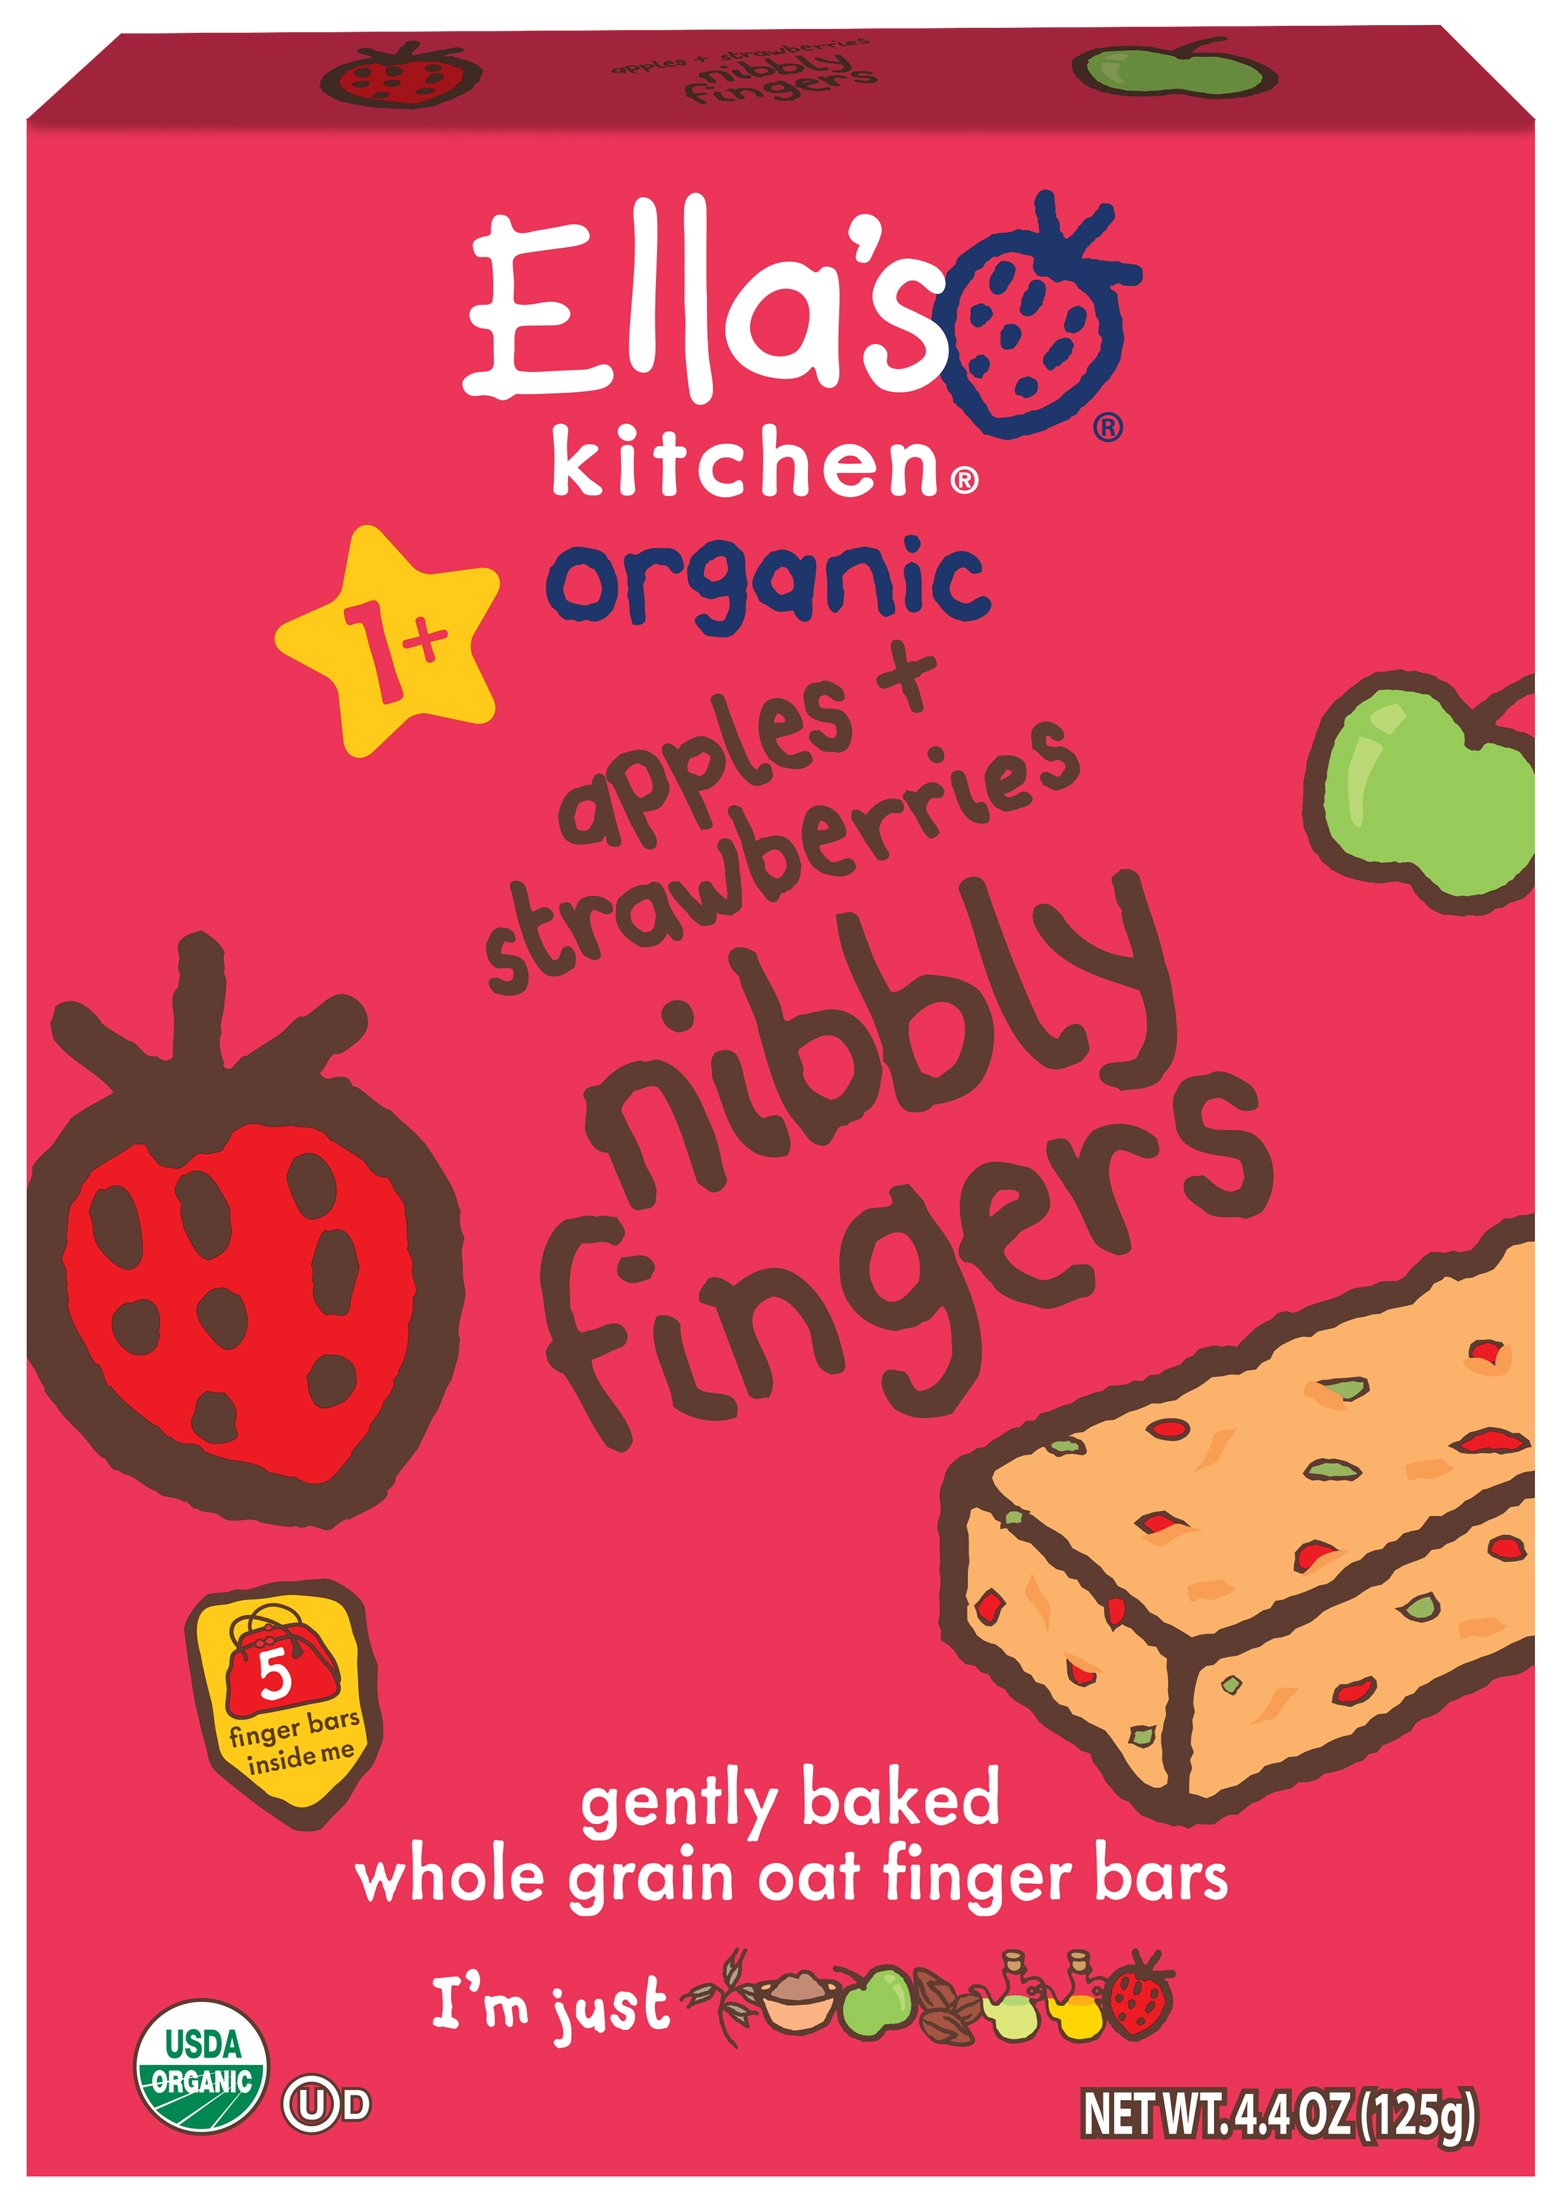 Ella's Kitchen Organic Nibbly Fingers, Apples + Strawberries, 5 Count (Pack of 12)